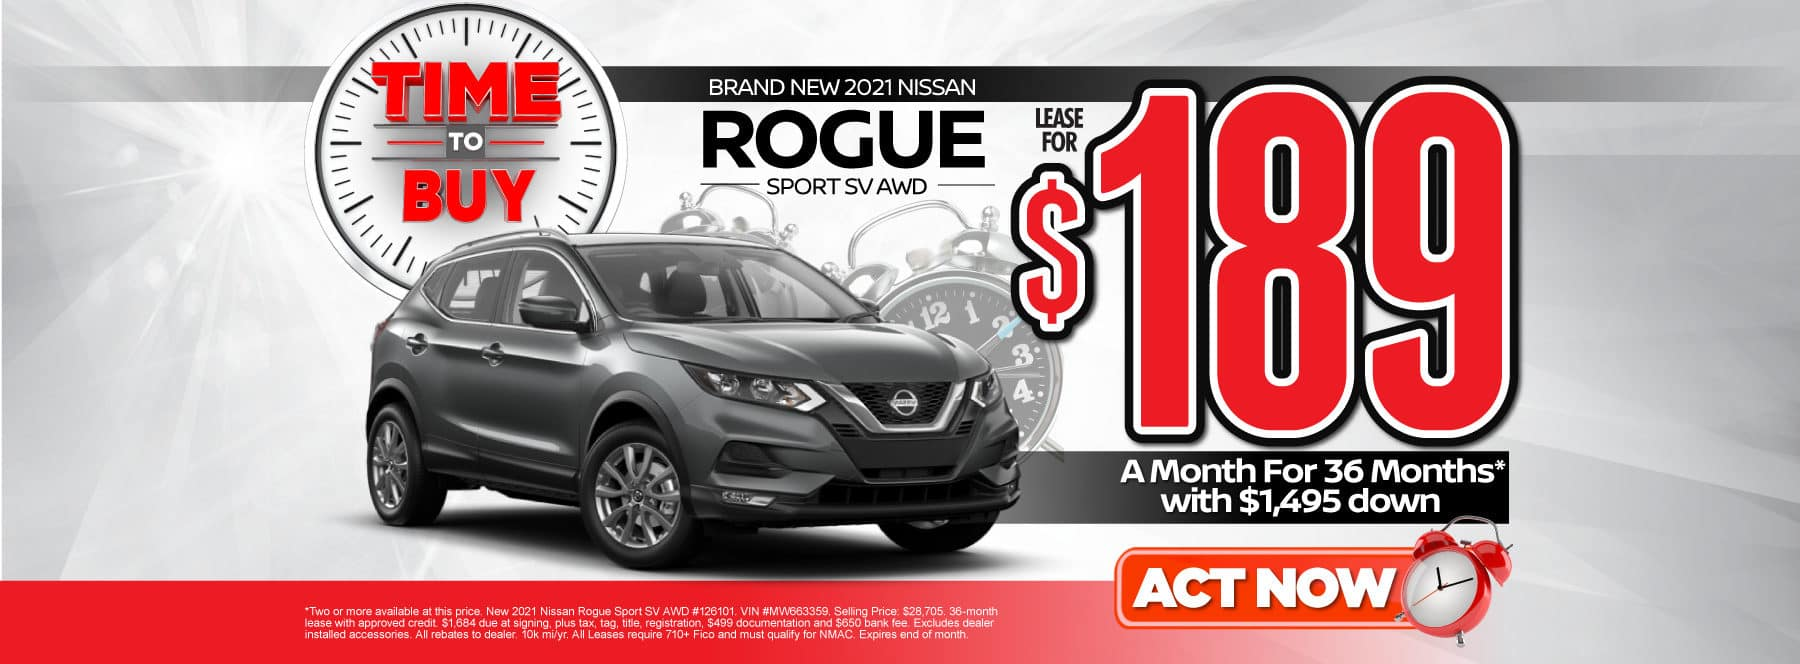 New 2021 Nissan Rogue Sport | Lease for $189 a month | Act Now